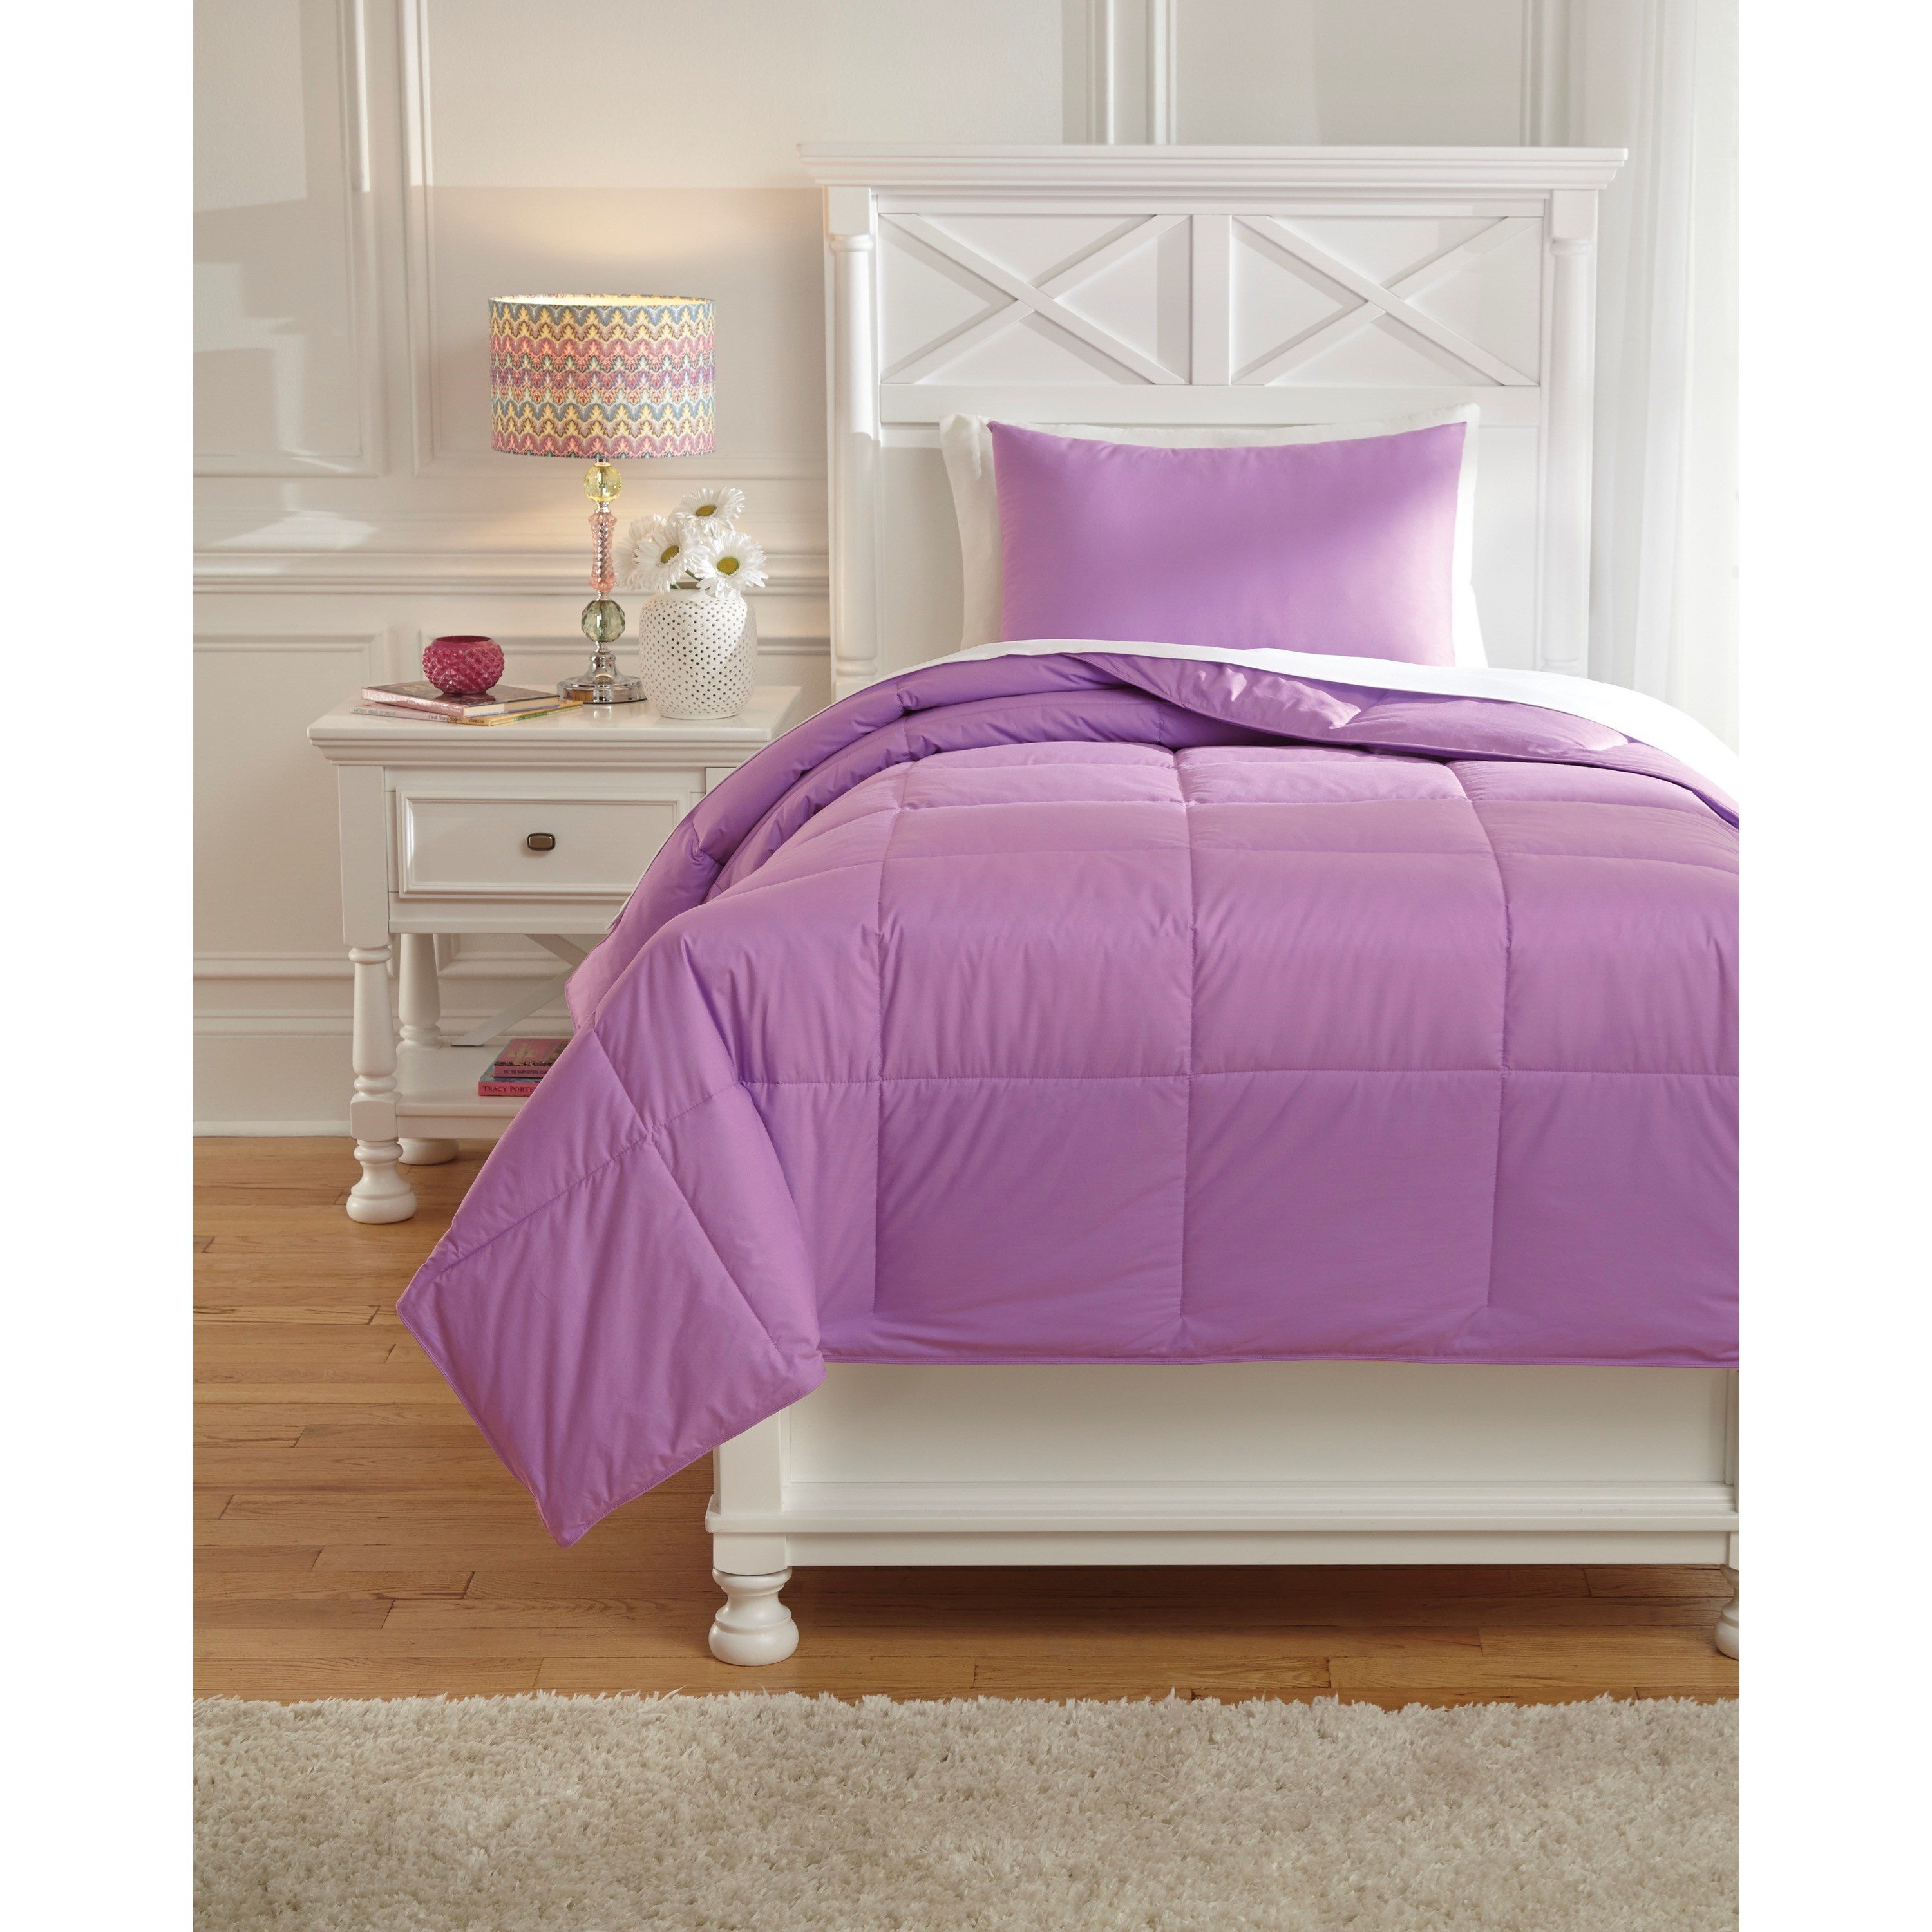 Bedding Sets Twin Plainfield Lavender Comforter Set by Signature Design by Ashley at Lapeer Furniture & Mattress Center